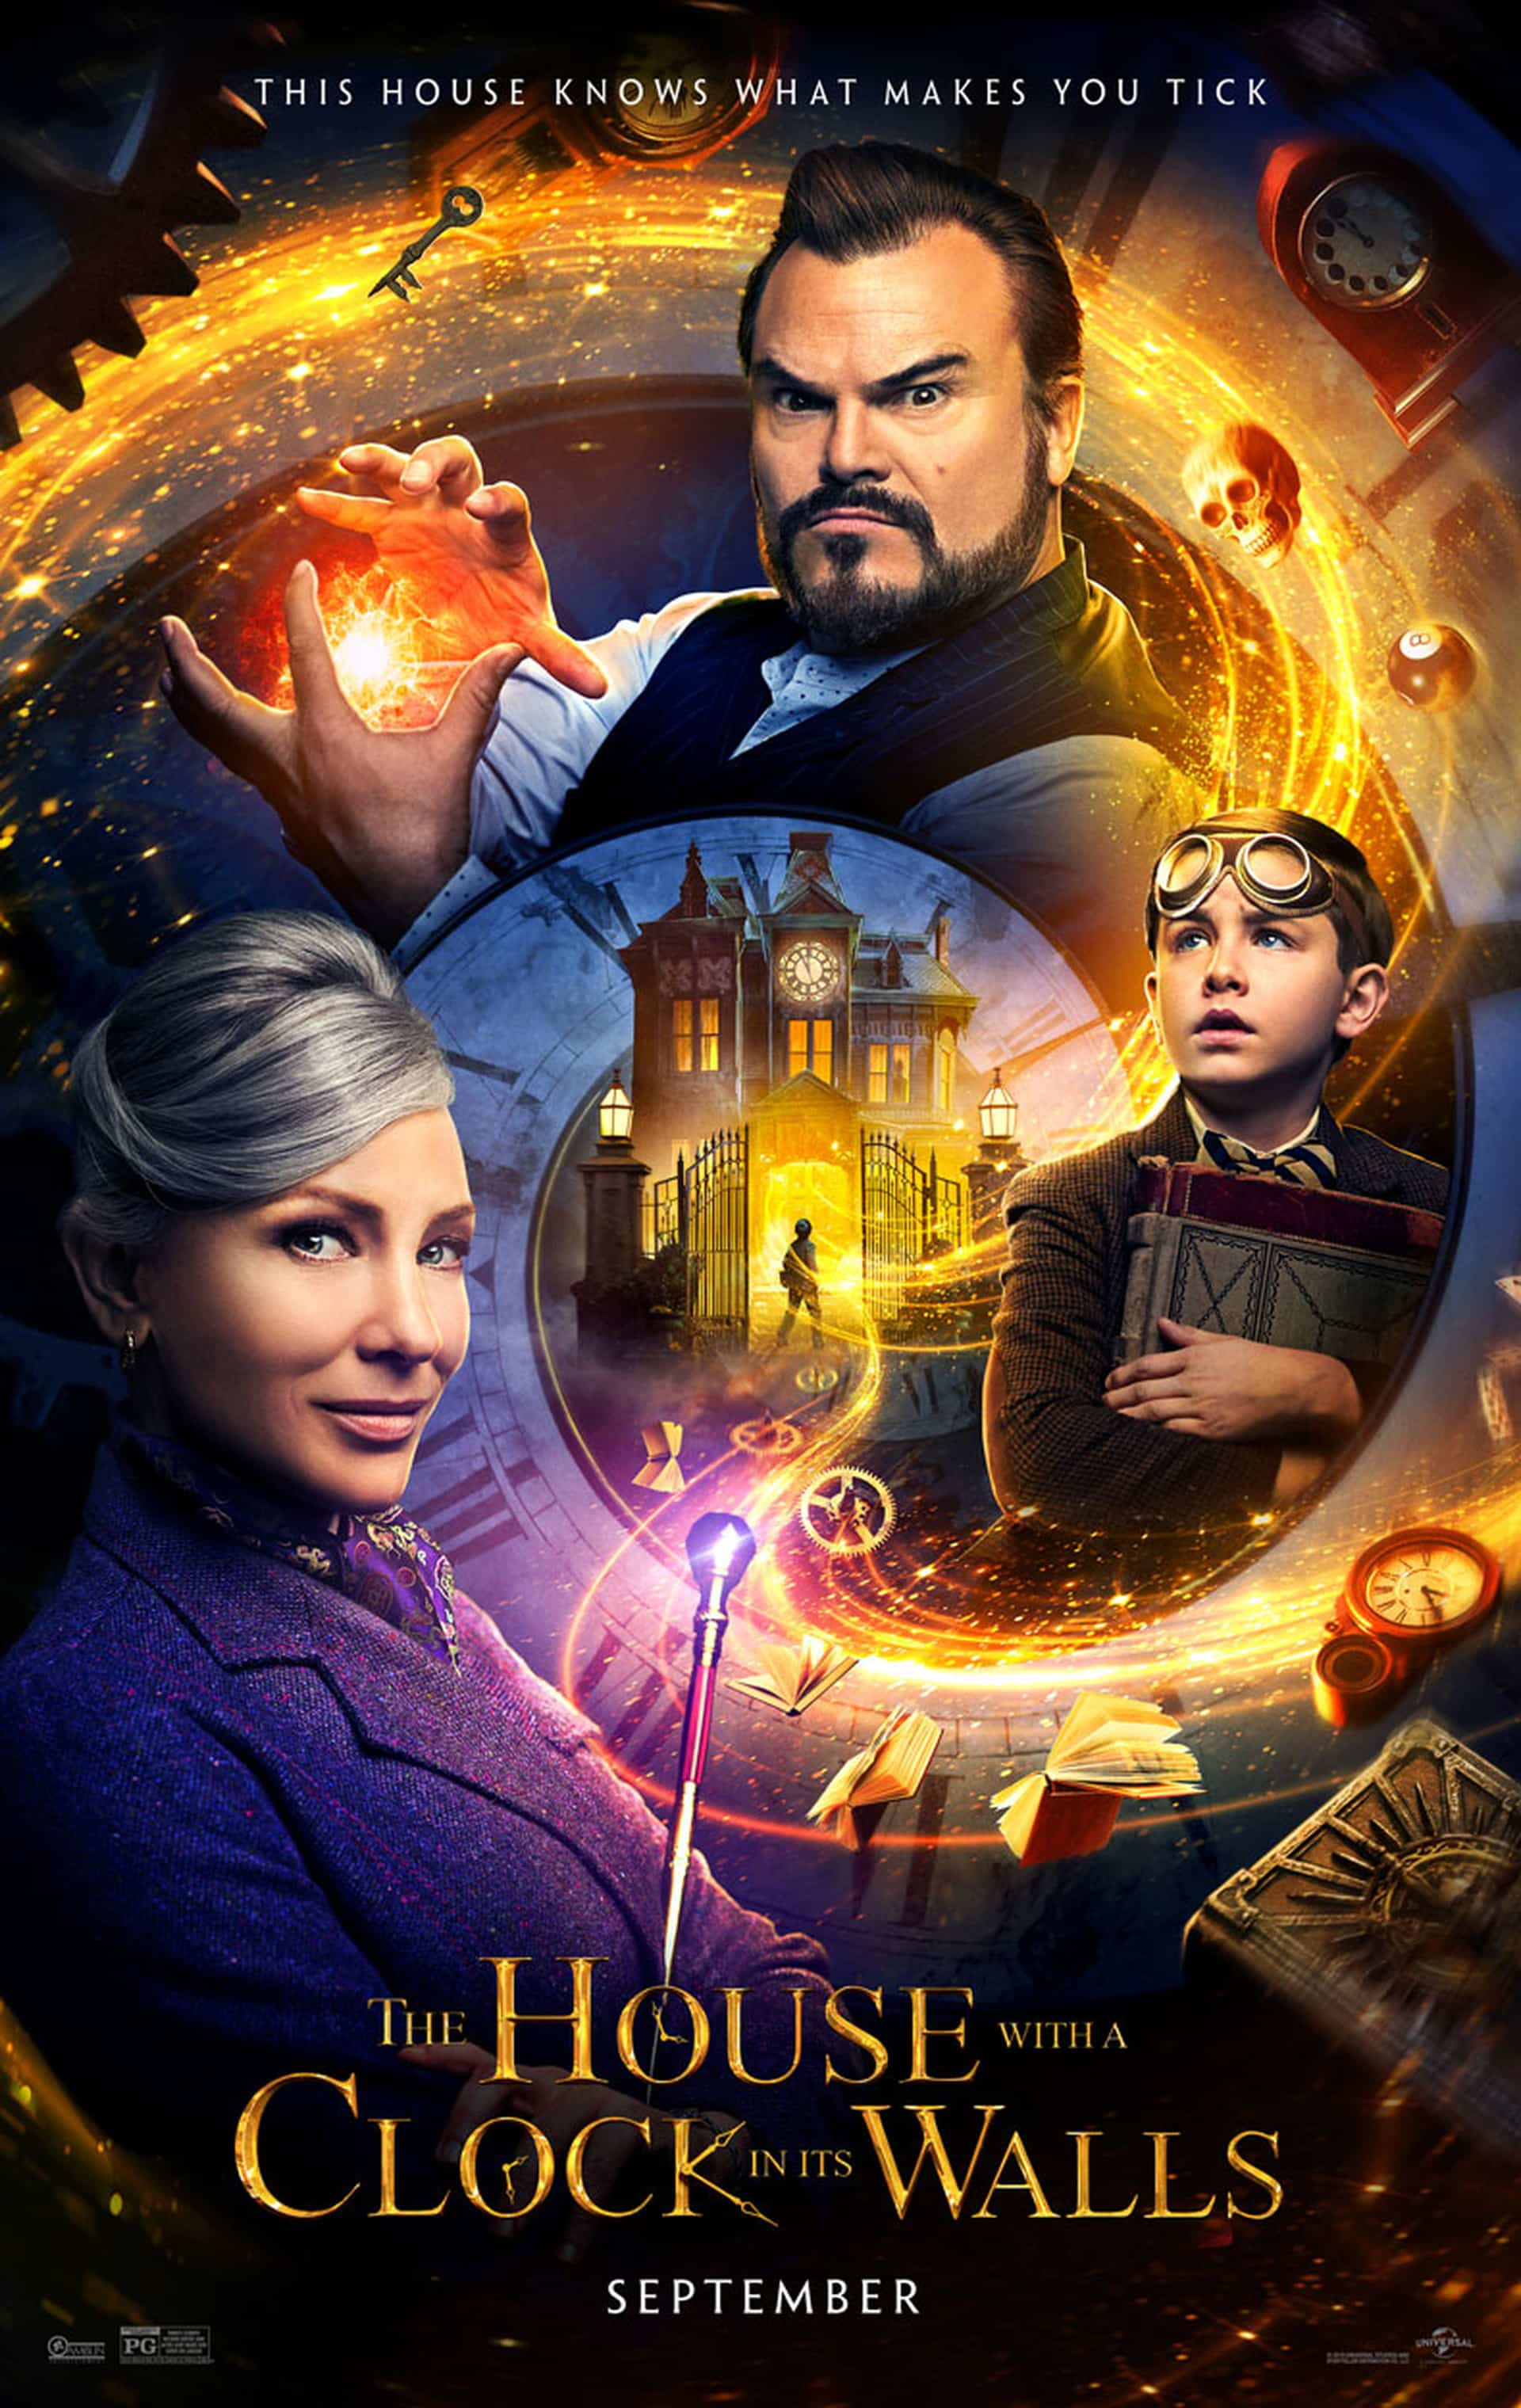 The House With A Clock In It's Walls poster, Cinematographe.it